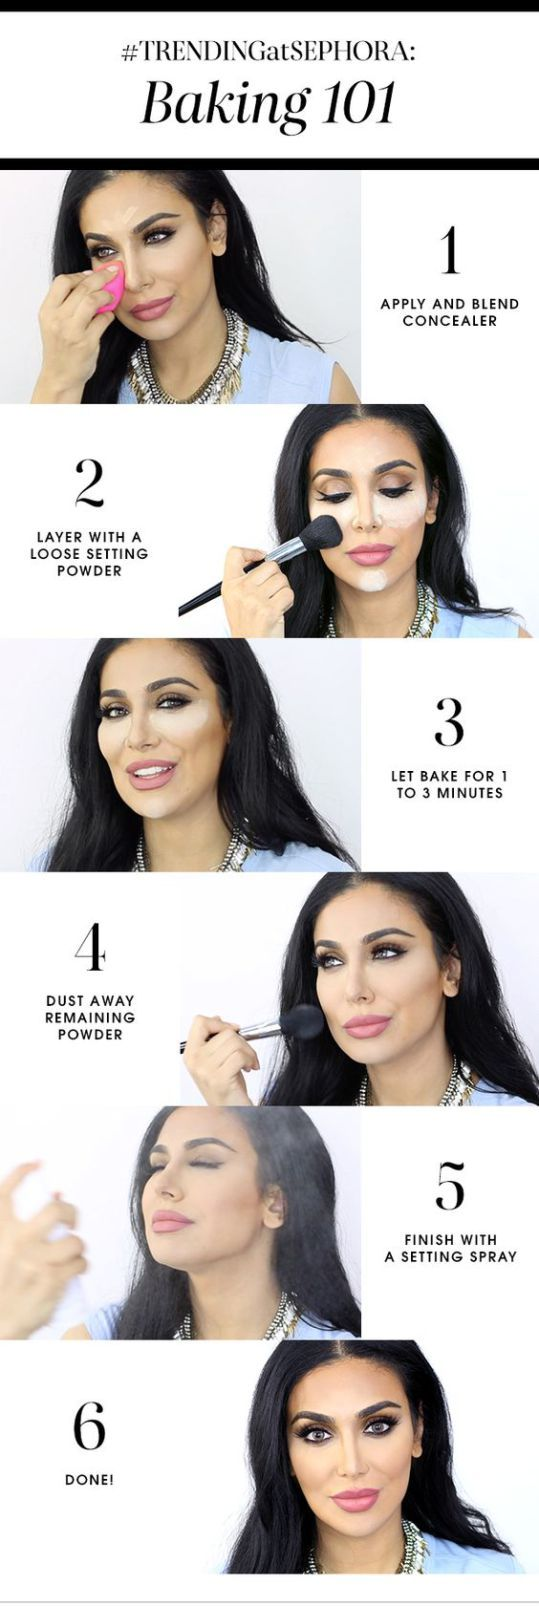 It's hard being a girl - and dealing with makeup can be a real struggle sometimes. But, here are some life-changing makeup tips you might not know that will make your life a little easier! 1. Use toilet seat covers as blotting paper. Ever run out of...